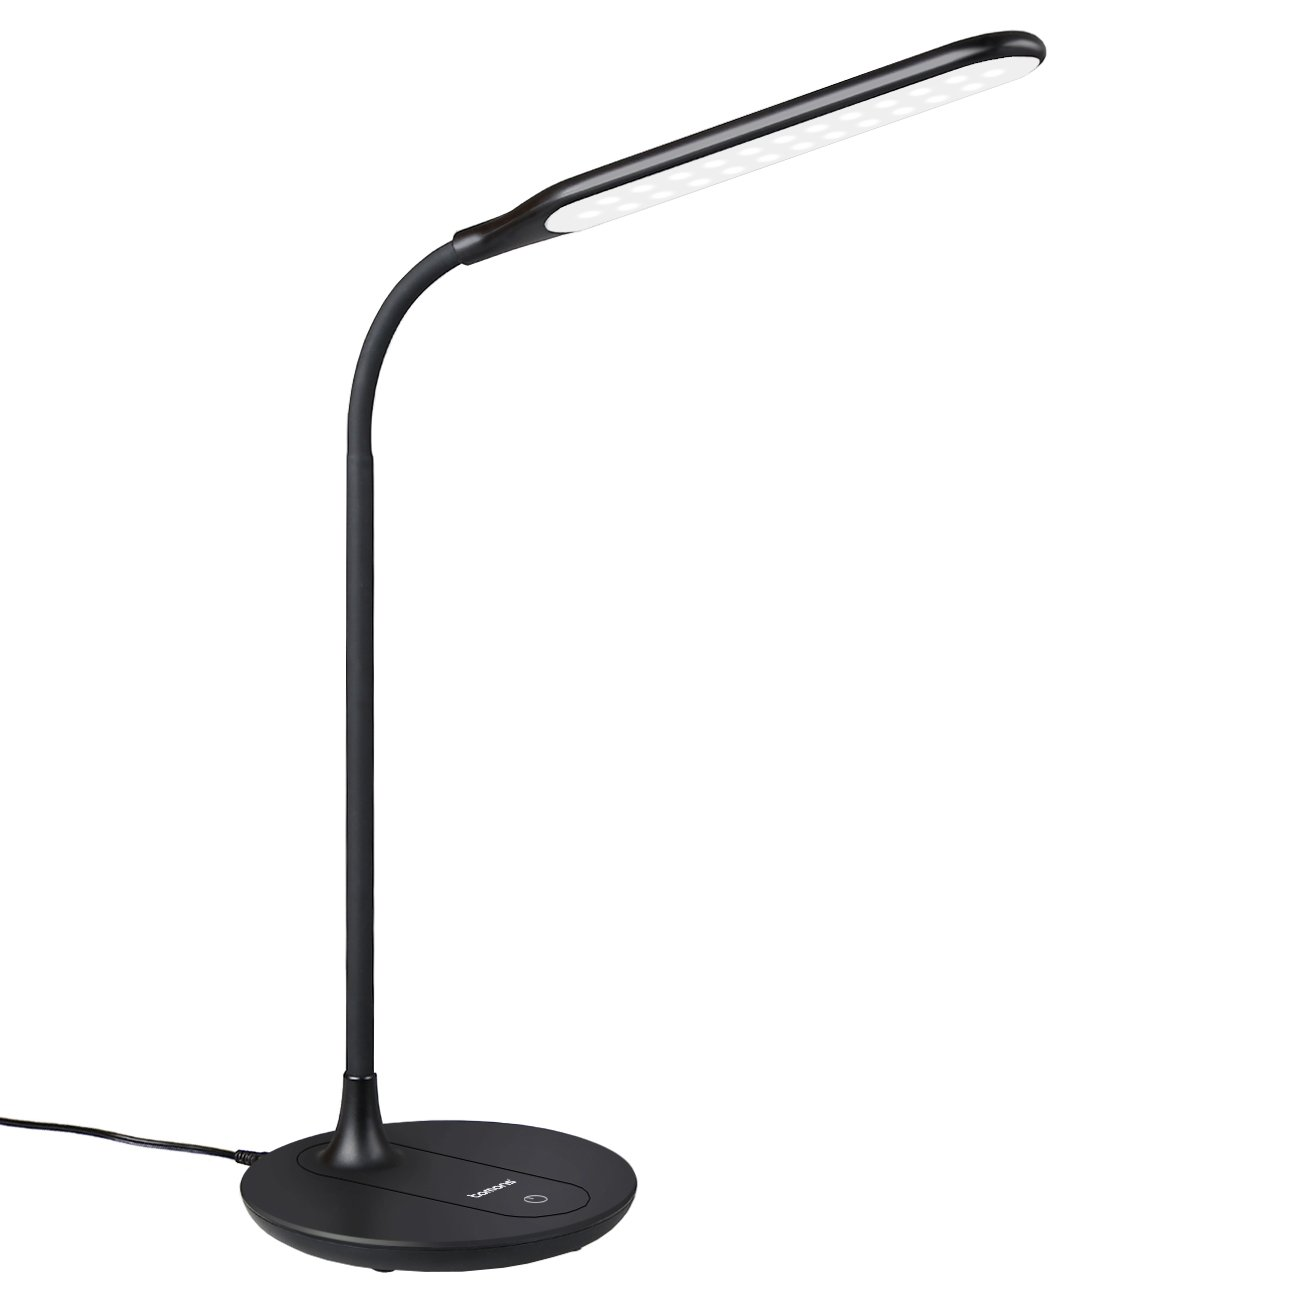 Tomons LED Desk Lamp, Office Lamp With USA Charging Port, Gooseneck Design, 360° Rotation Adjustable, 3 Brightness Levels - DL2002